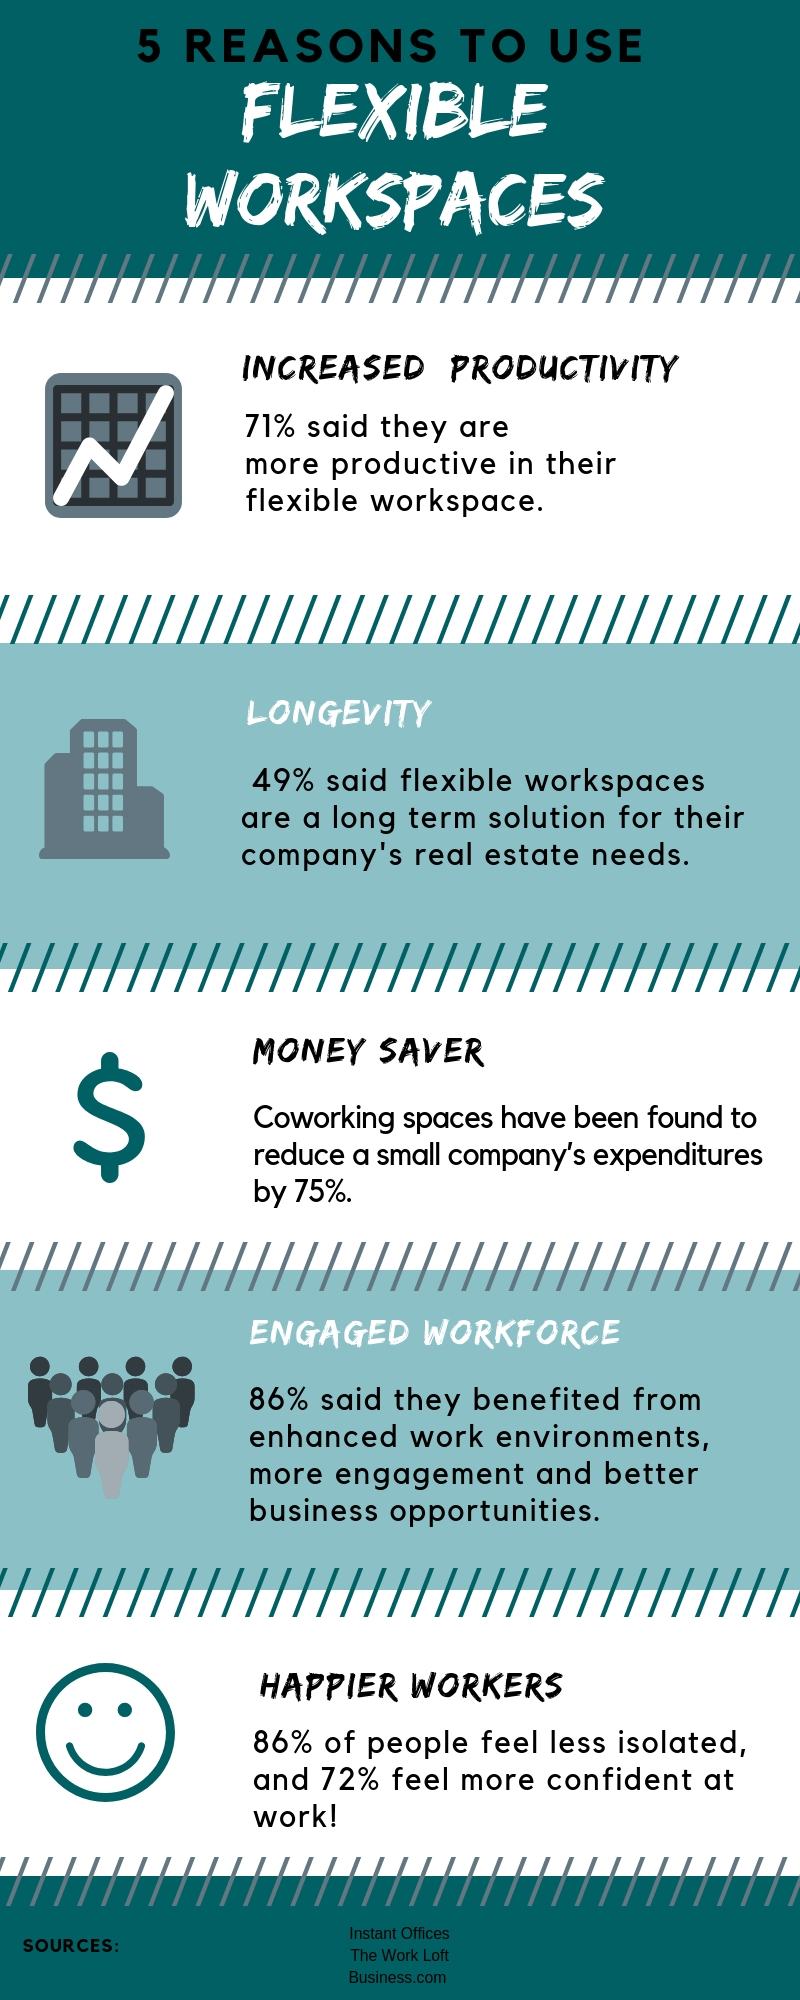 5 Reasons to use flexible workspace infographic brisbane